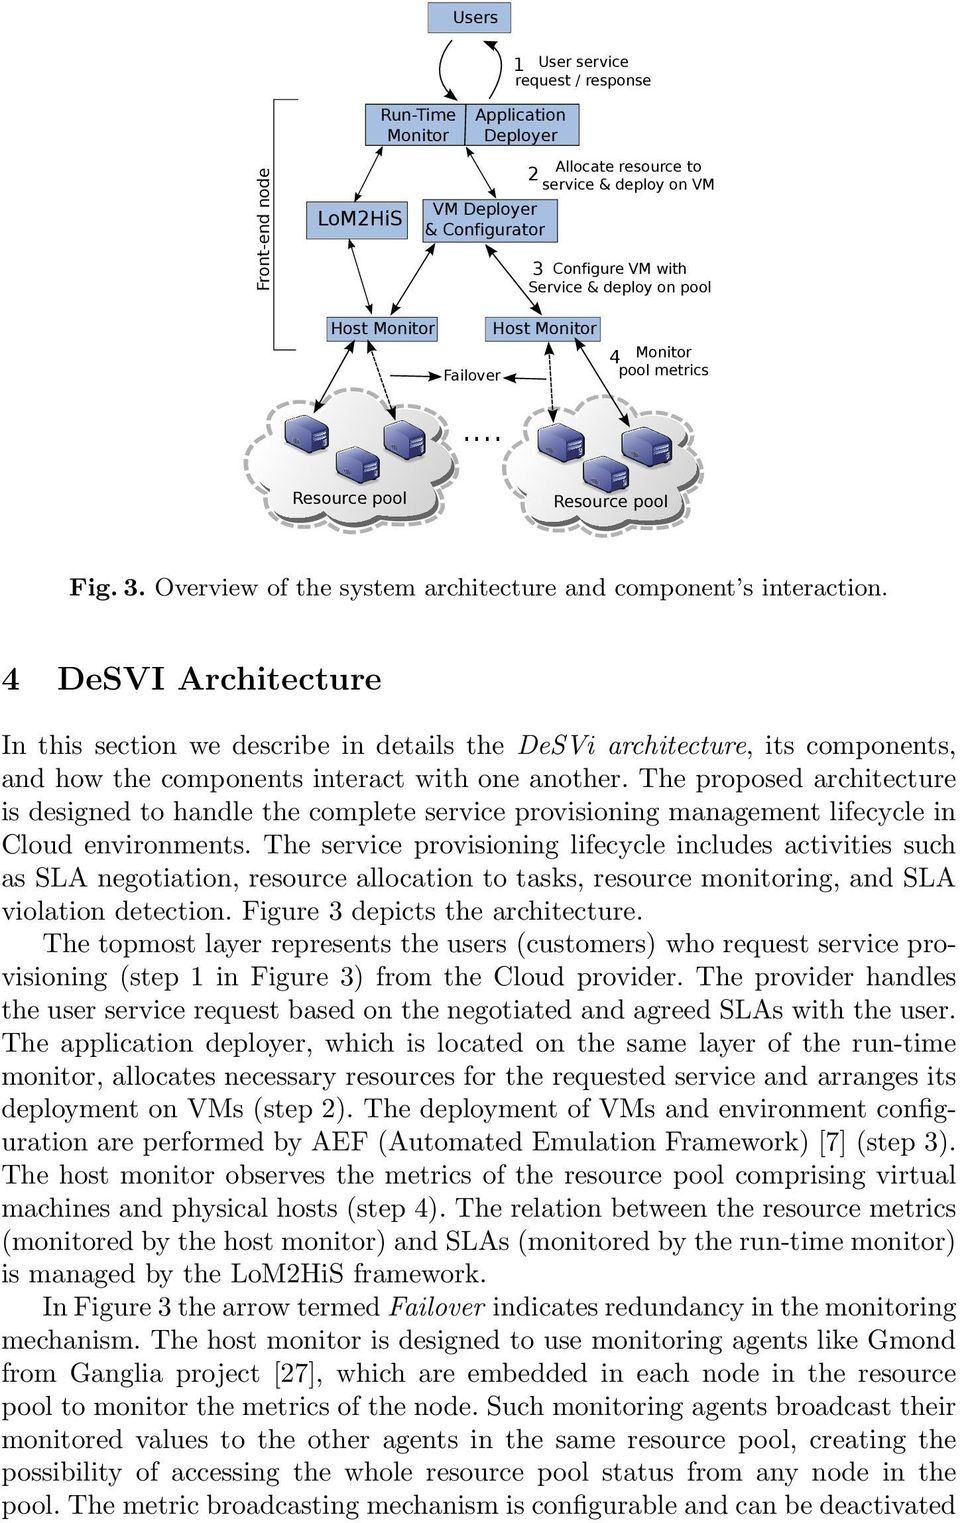 4 DeSVI Architecture In this section we describe in details the DeSVi architecture, its components, and how the components interact with one another.